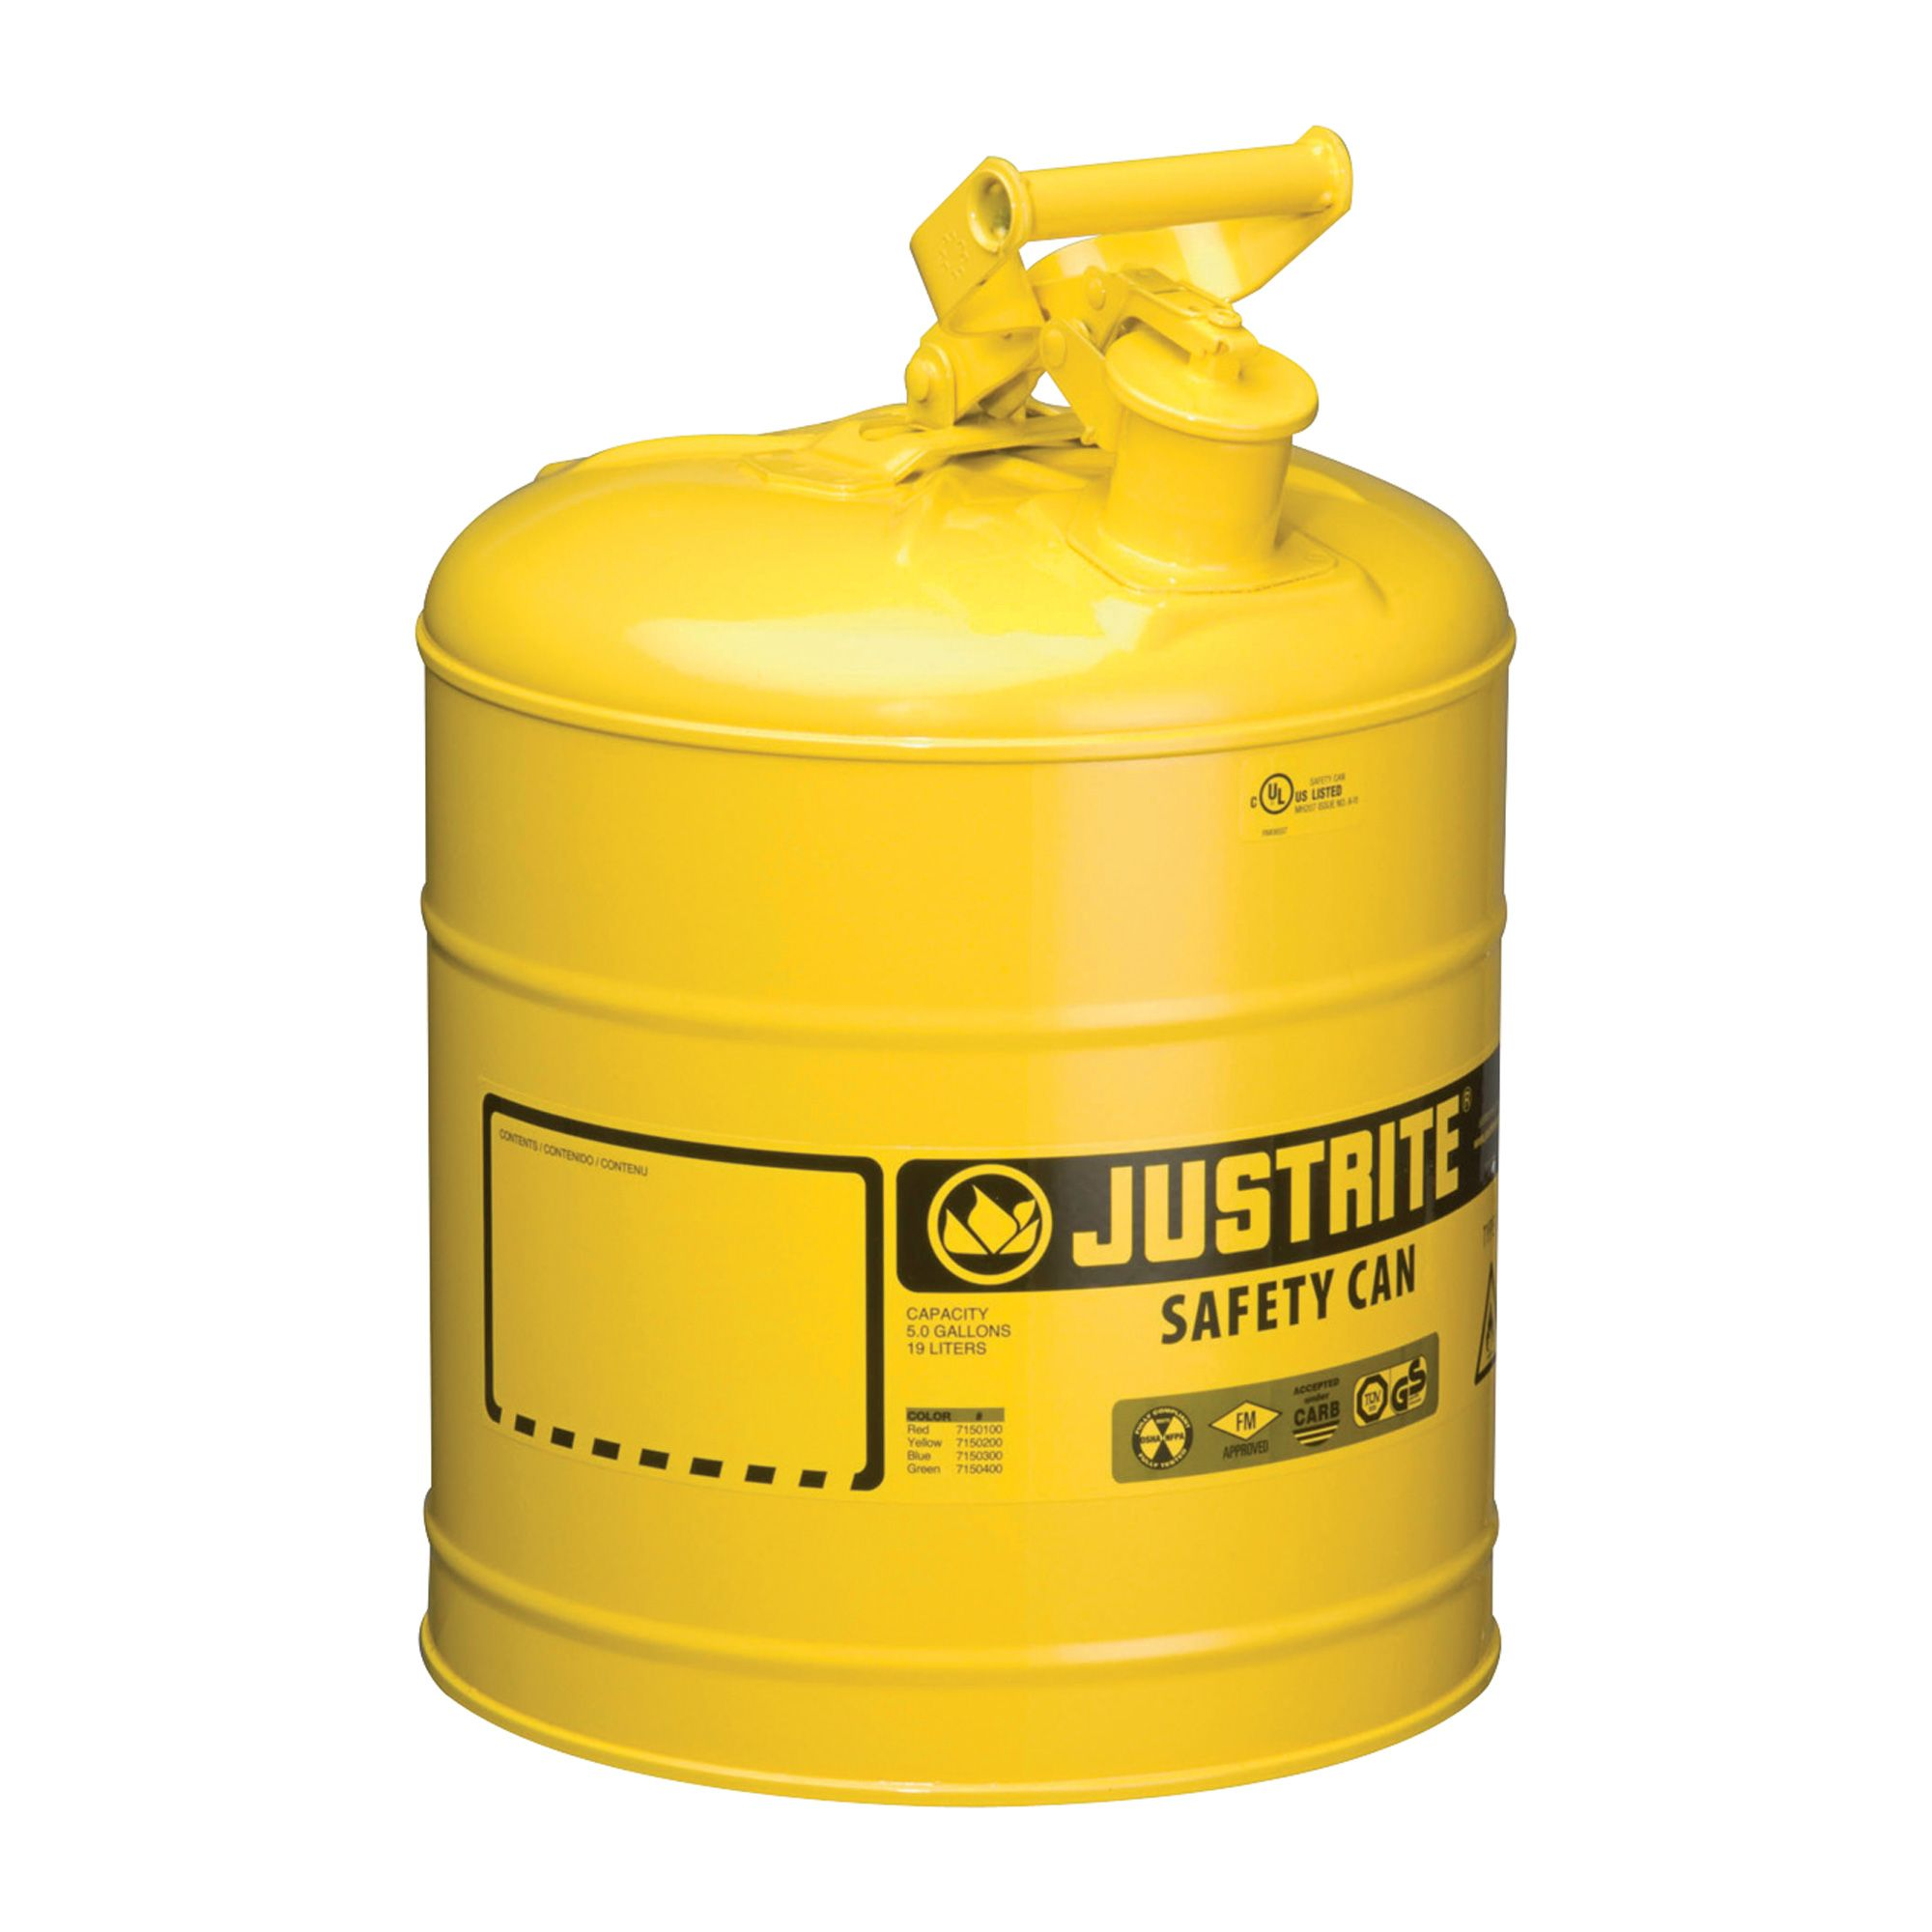 Justrite Safety Gas Can 5Gallon, Model 7150200 Canning